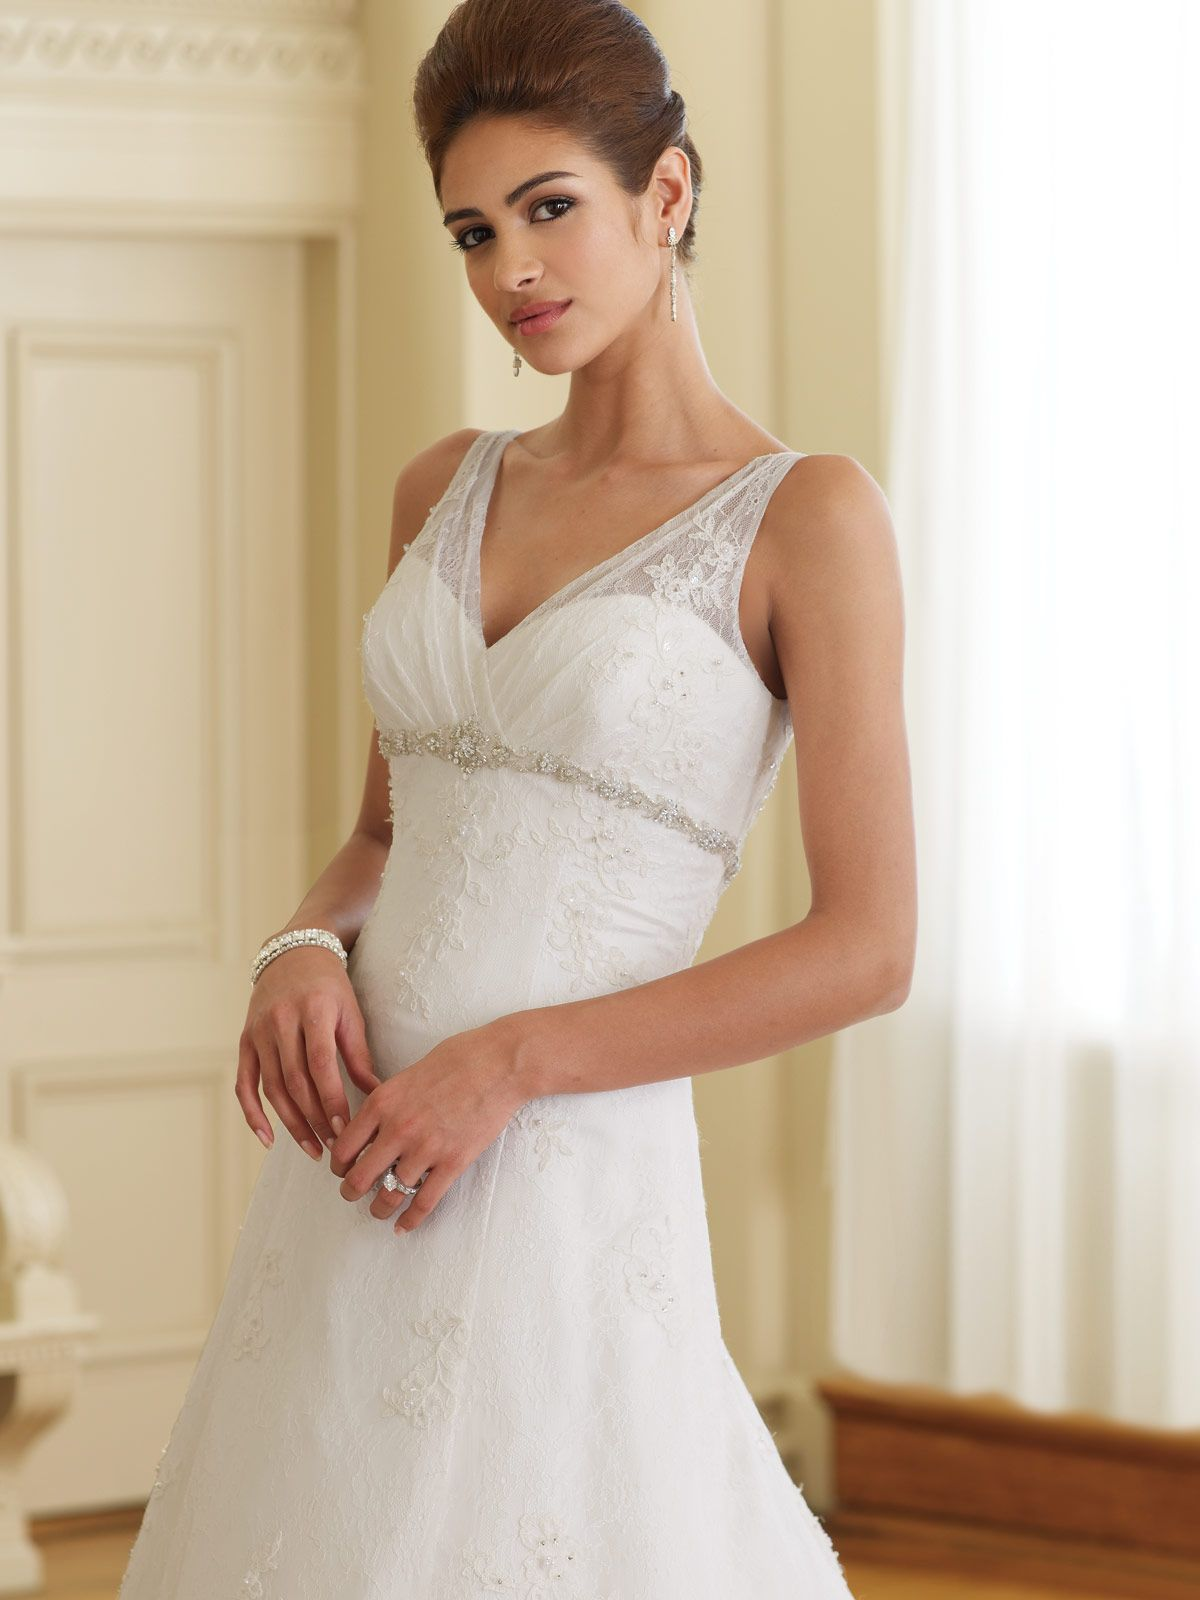 Gowns For Petite Brides Wedding Gowns For Petite Brides Wedding